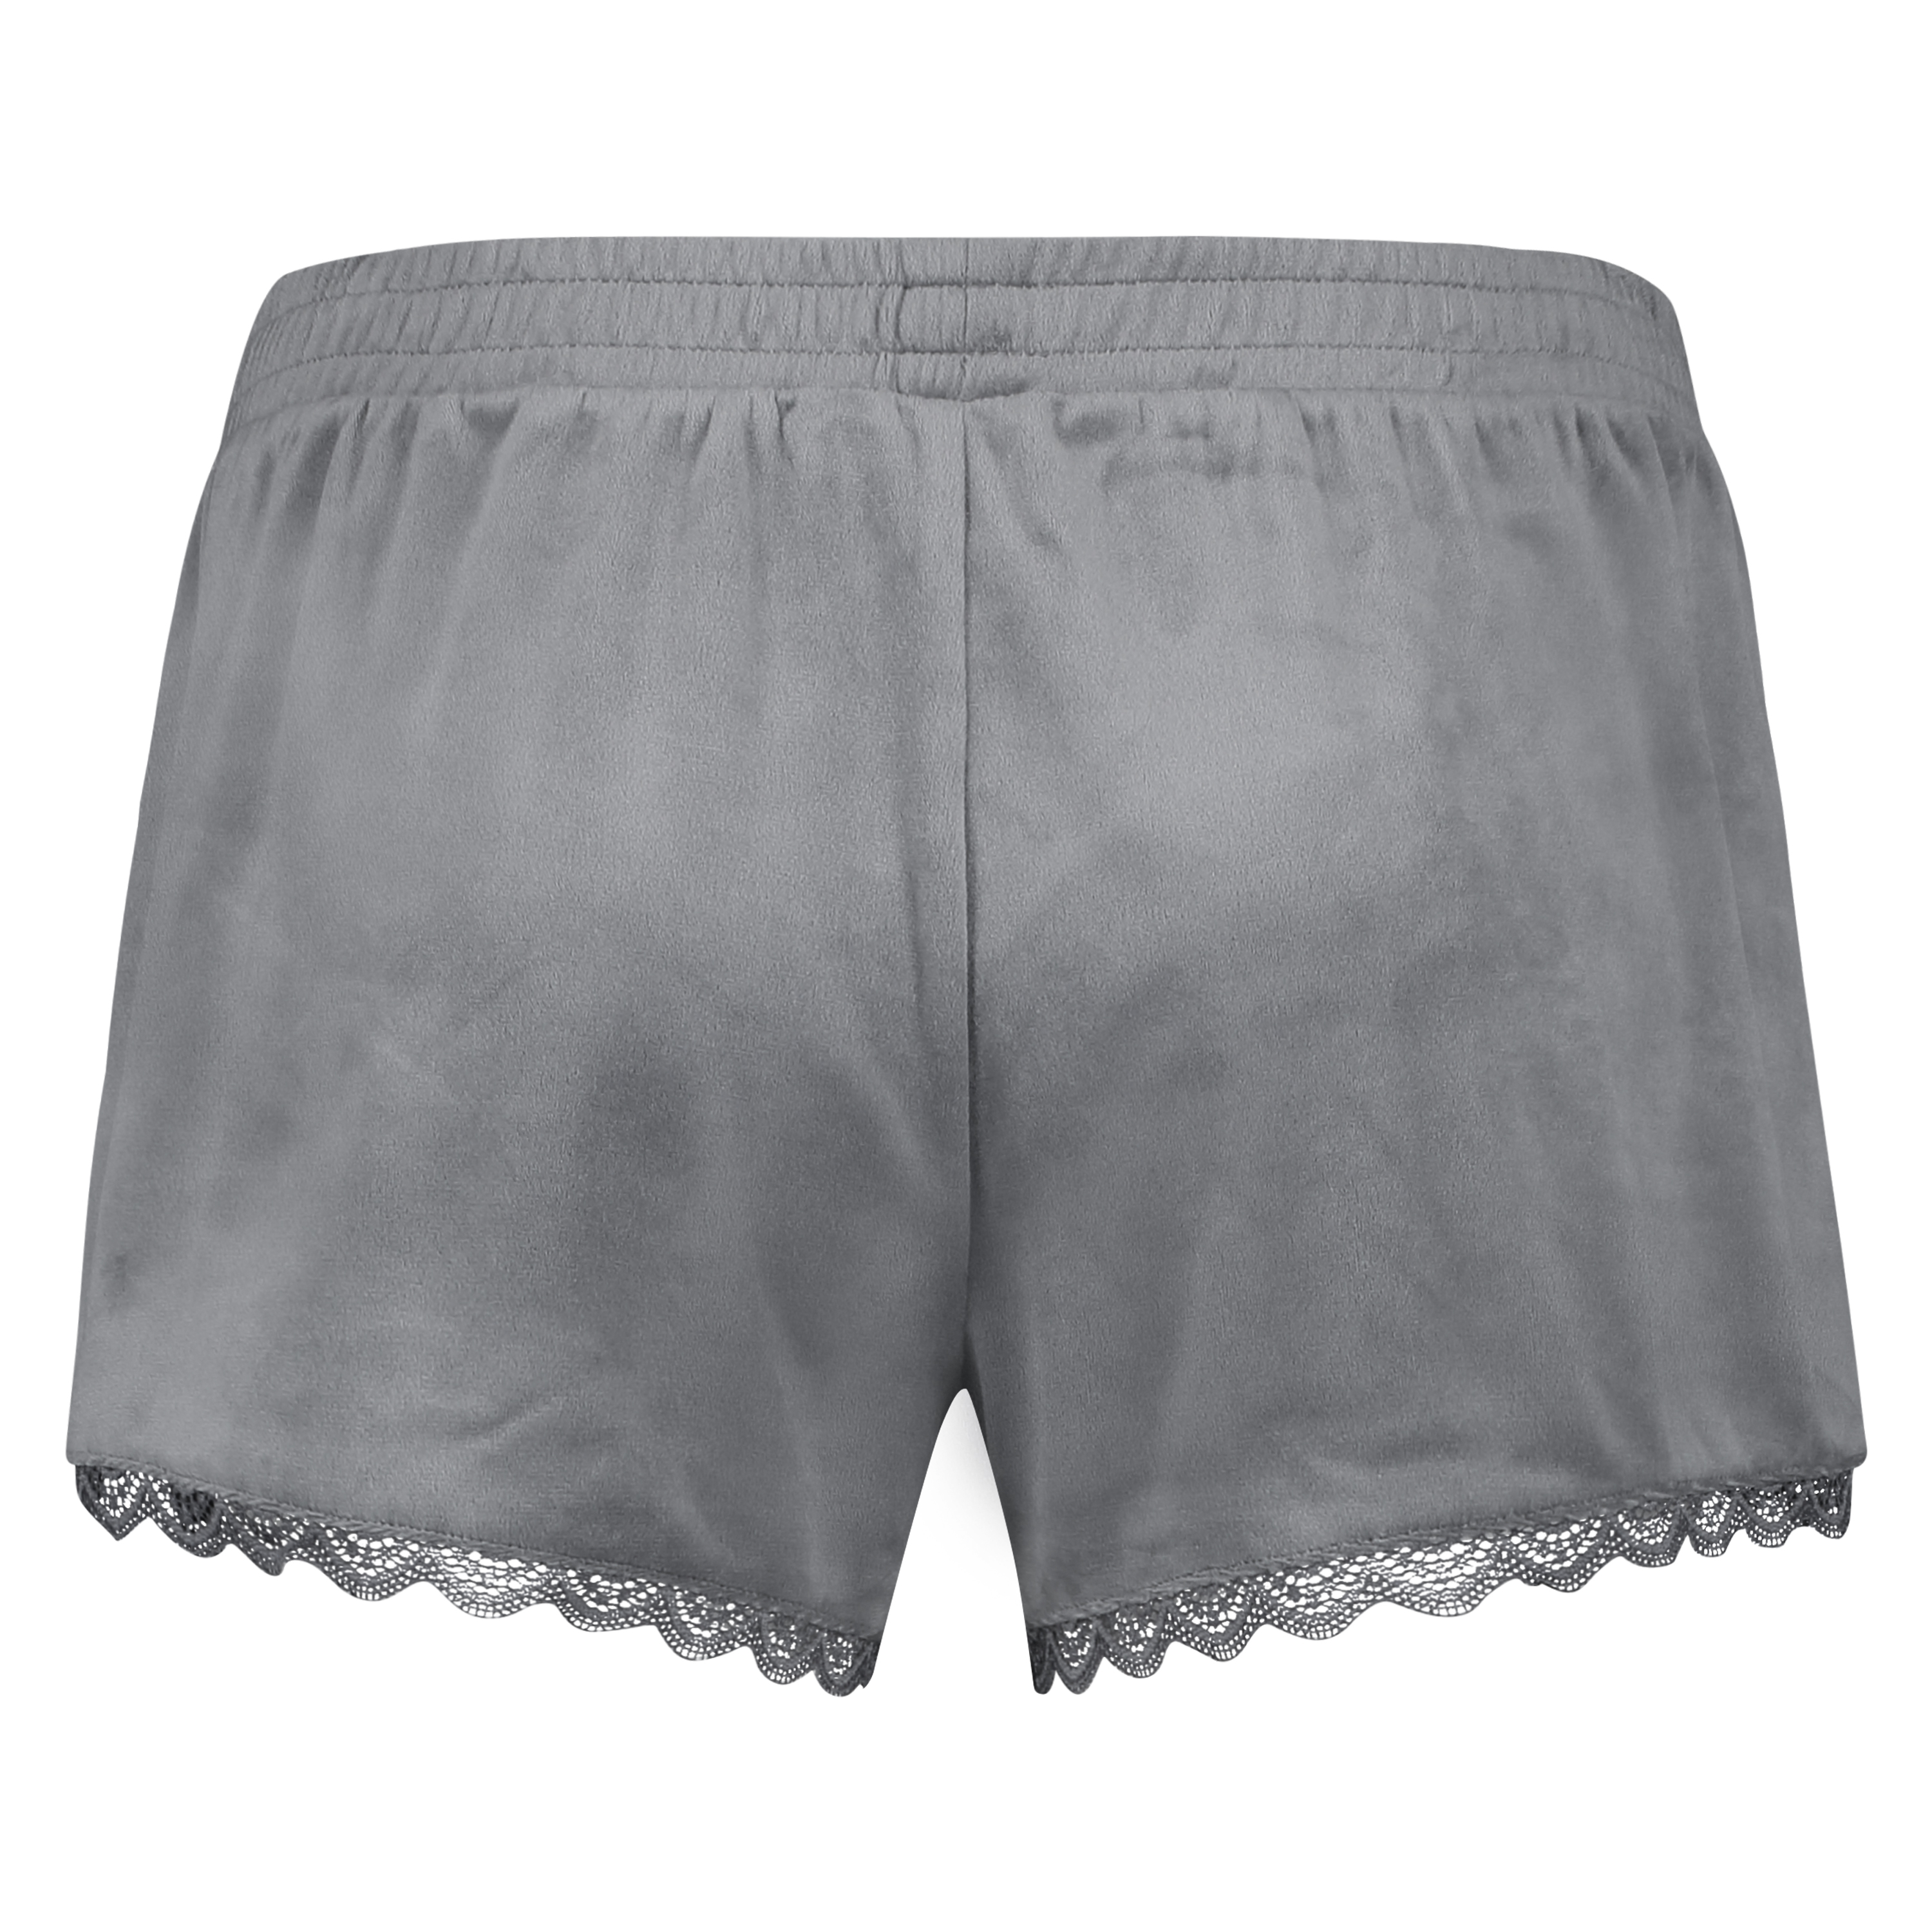 Shorts Velours Lace, Grau, main